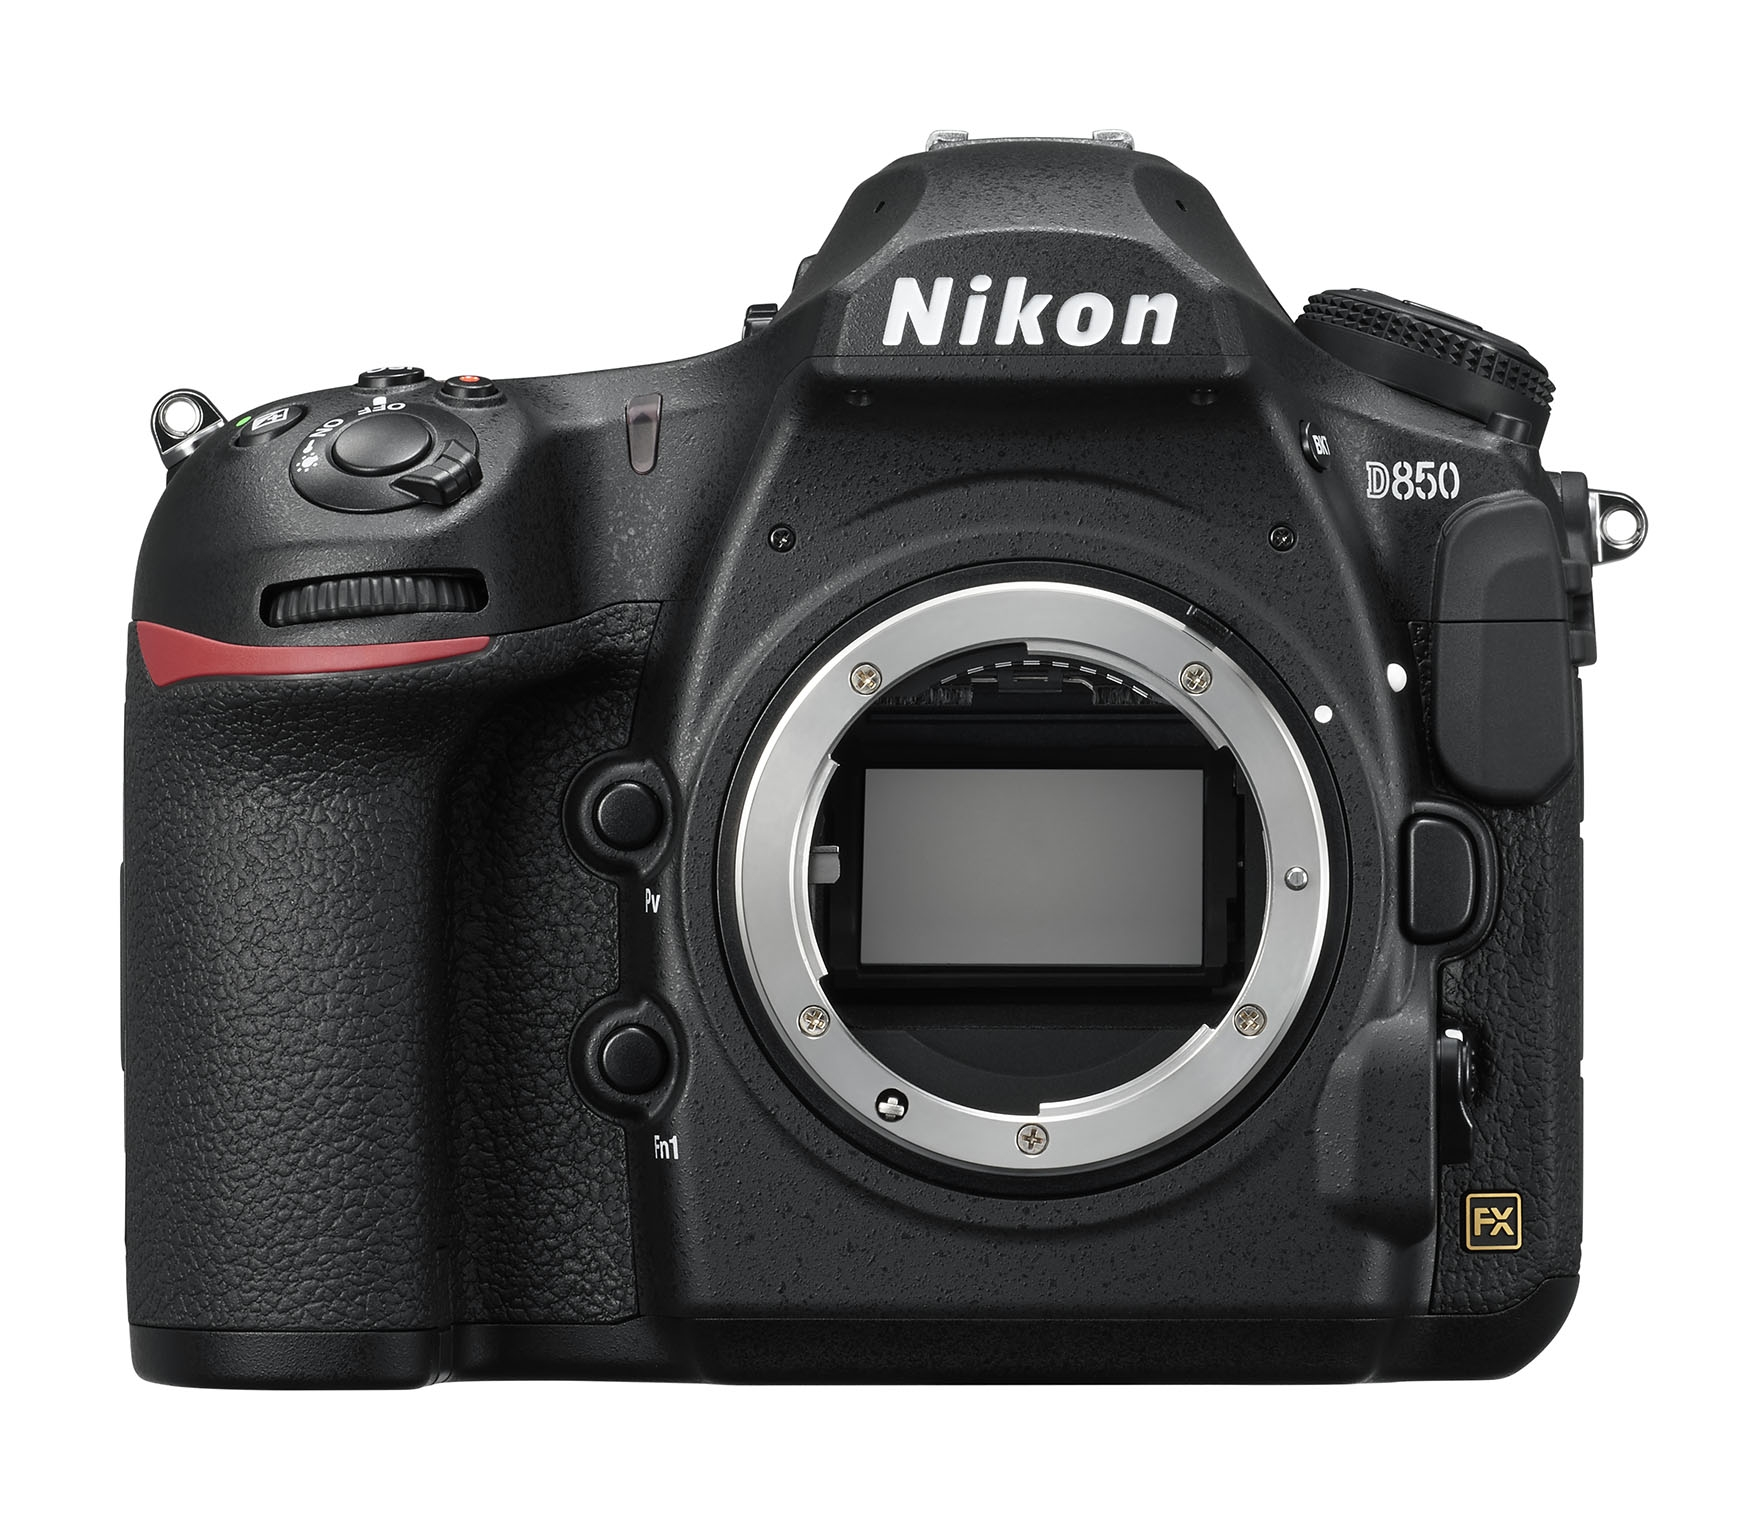 Nikon D850 Sensor Review: First DSLR to hit 100 points - DxOMark